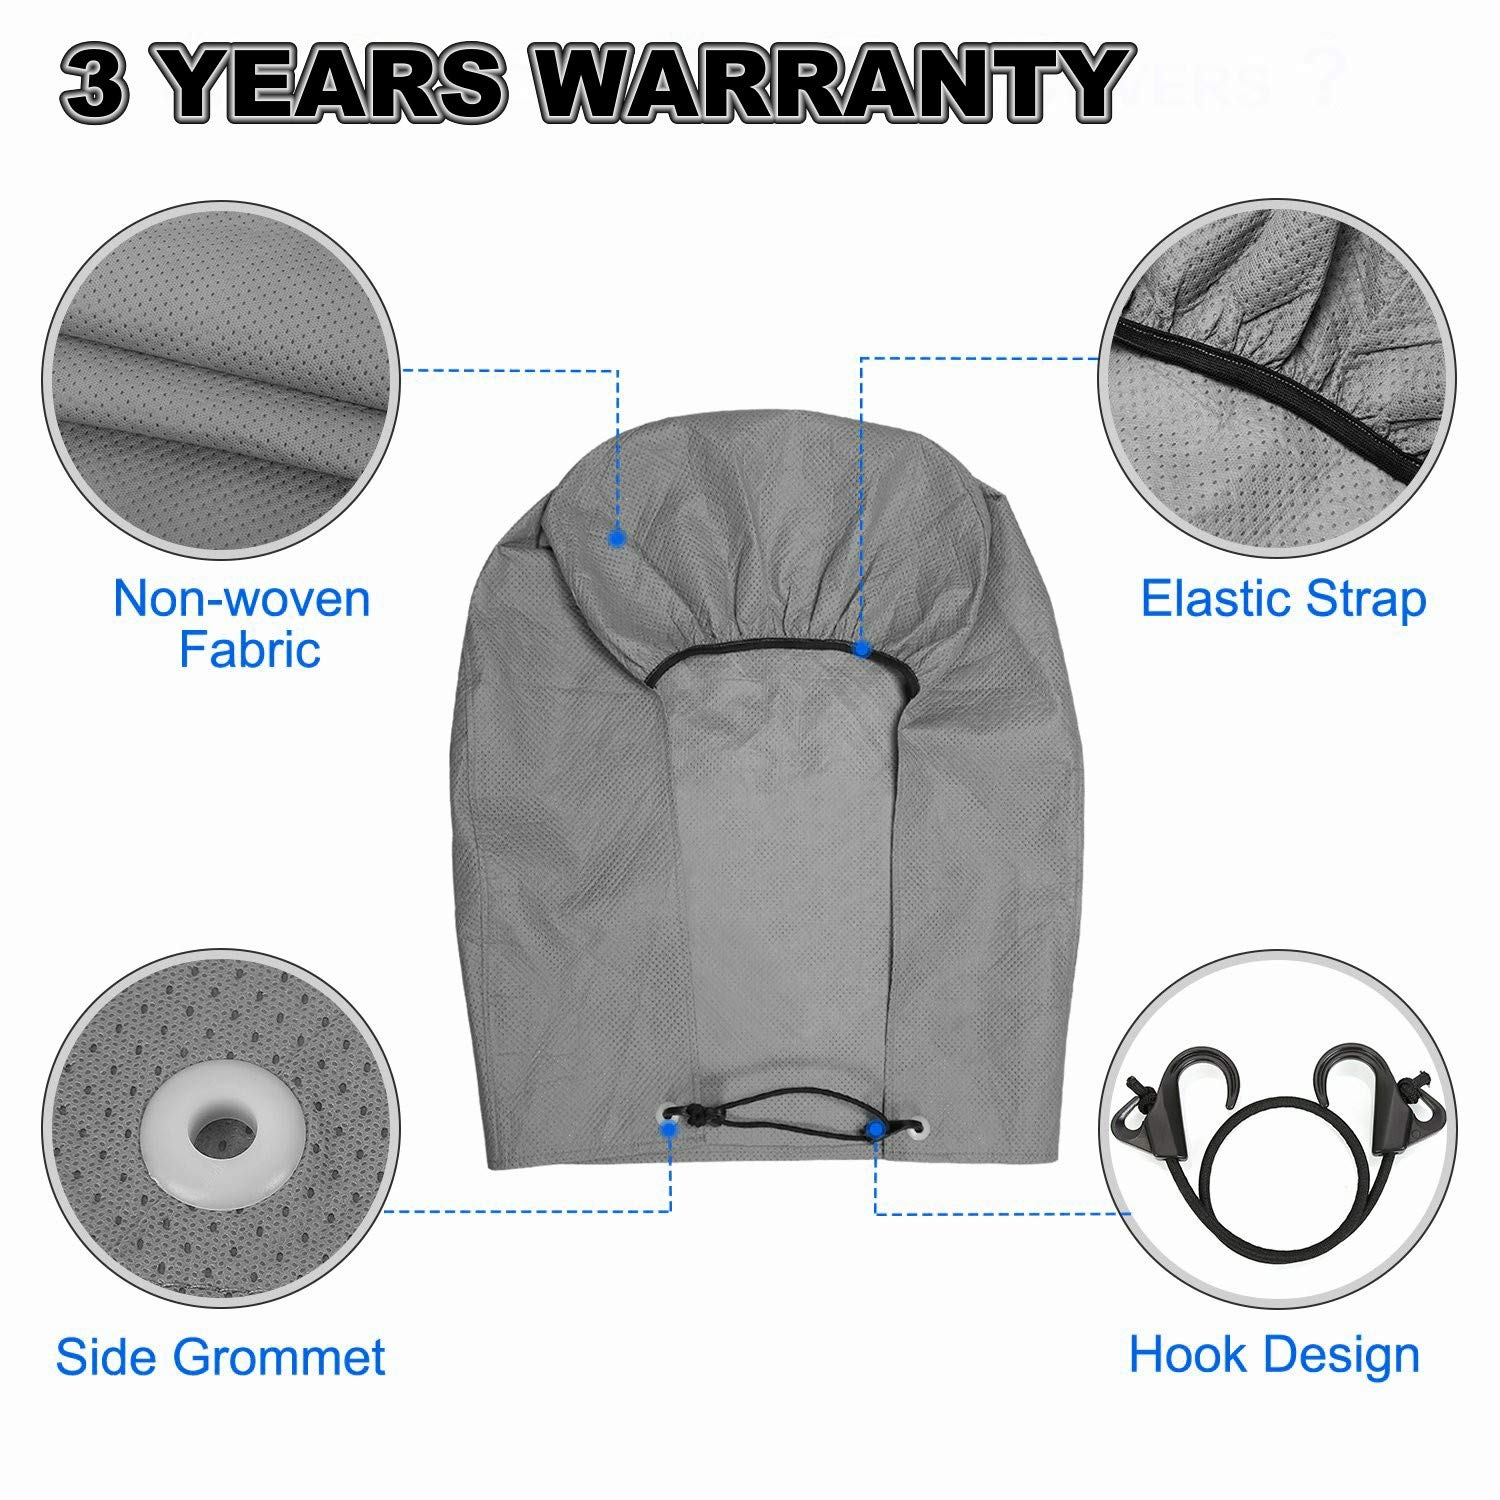 NicoMoO Tire Covers for RV Wheel Set of 4 Extra Thick 5-ply Motorhome Wheel Covers Waterproof UV Coating Tire Protectors for Trailer Truck Camper Auto 29-32